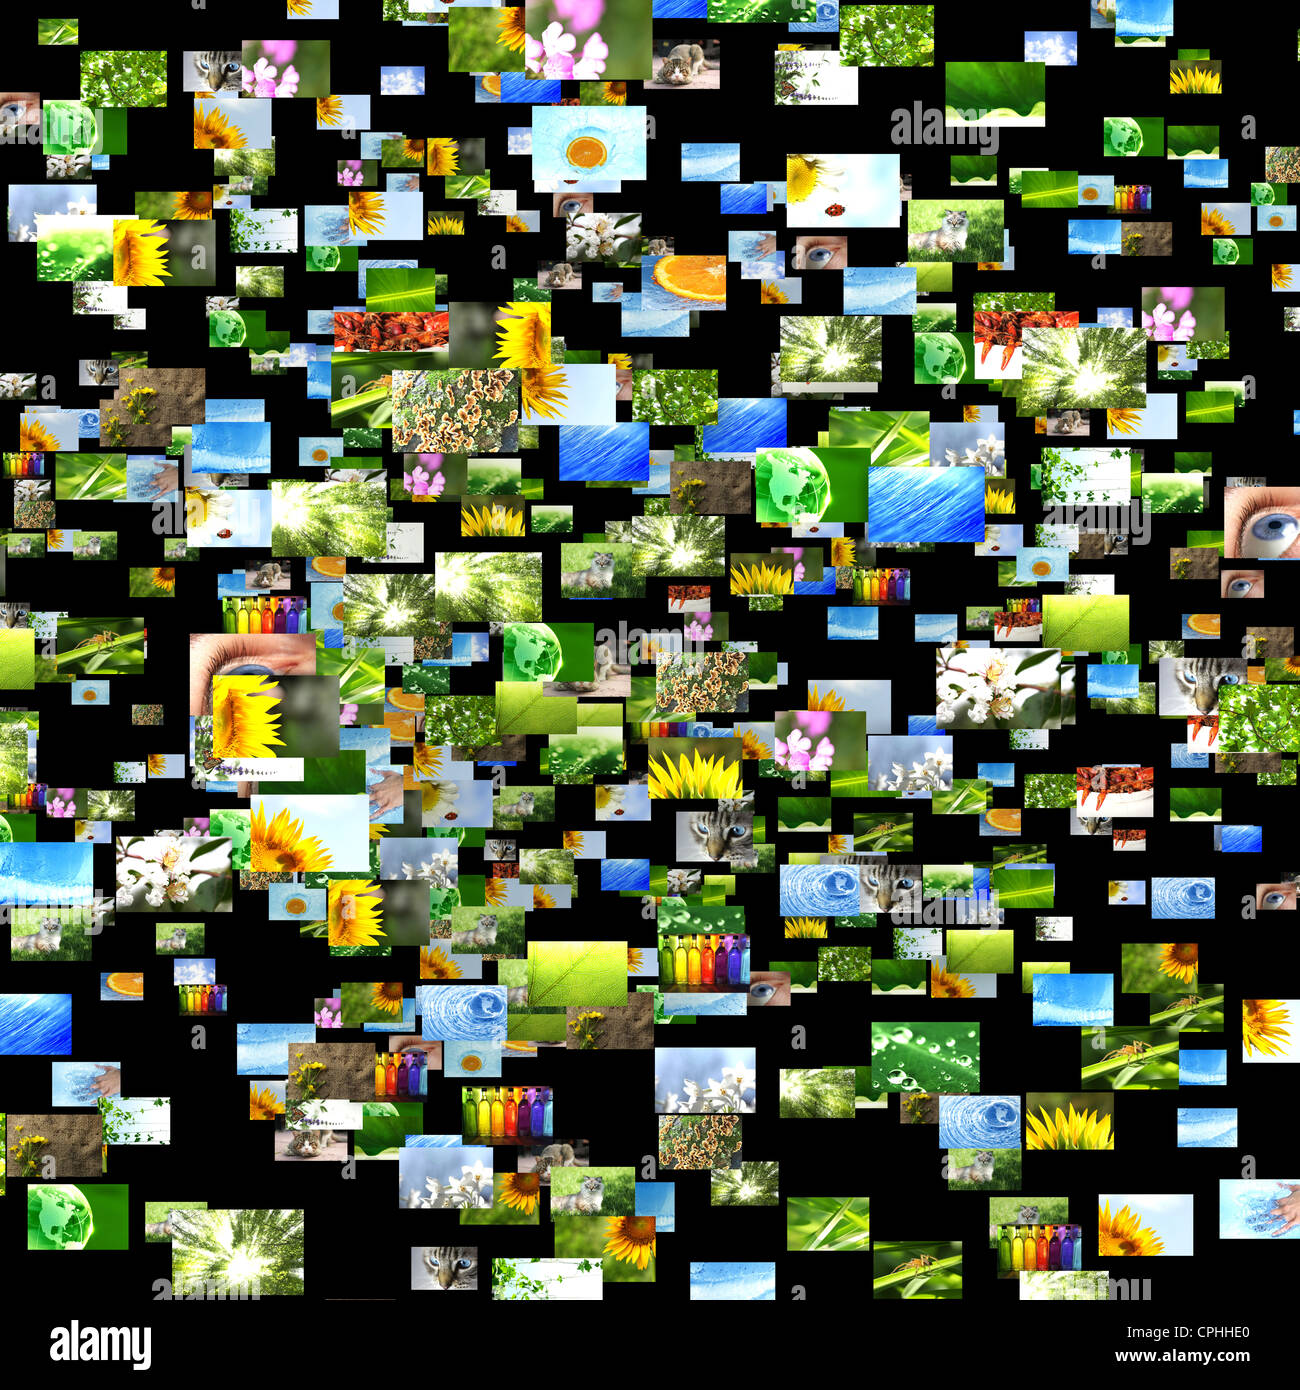 Scattered images - Stock Image